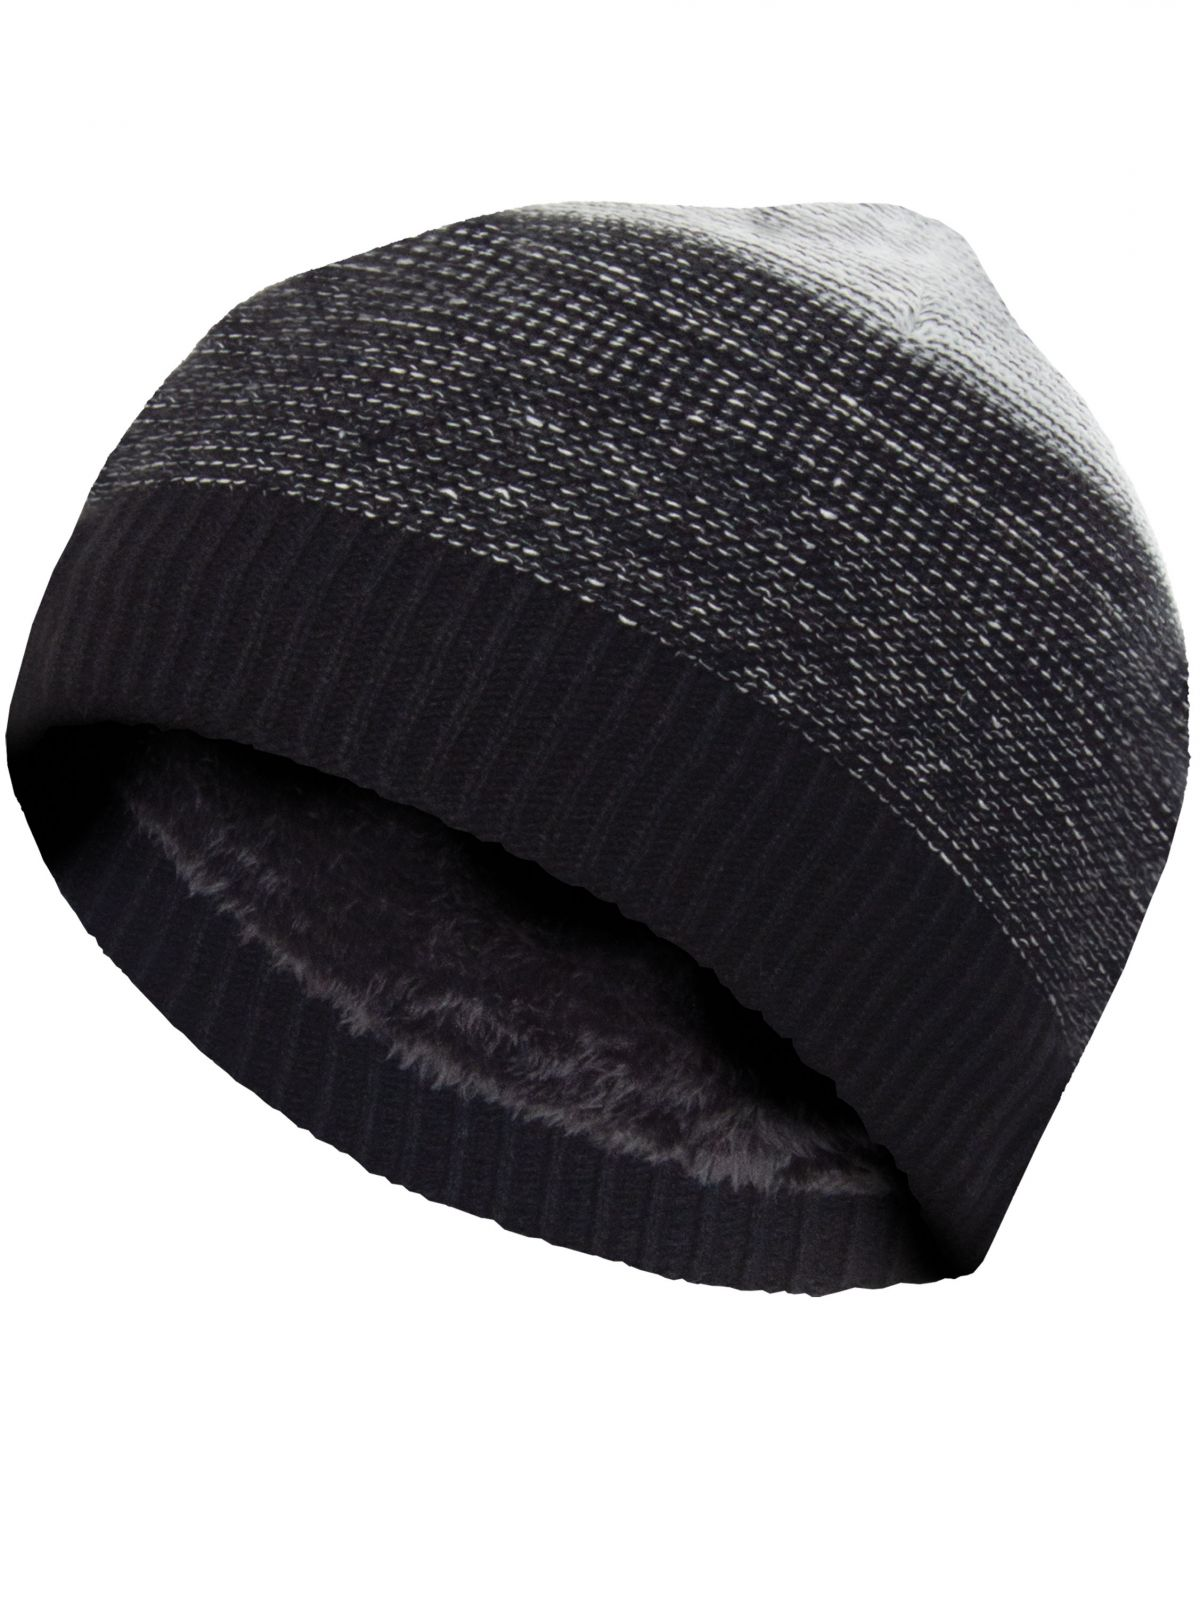 Accessories | Mens Knitted Outdoor Beanie Hat